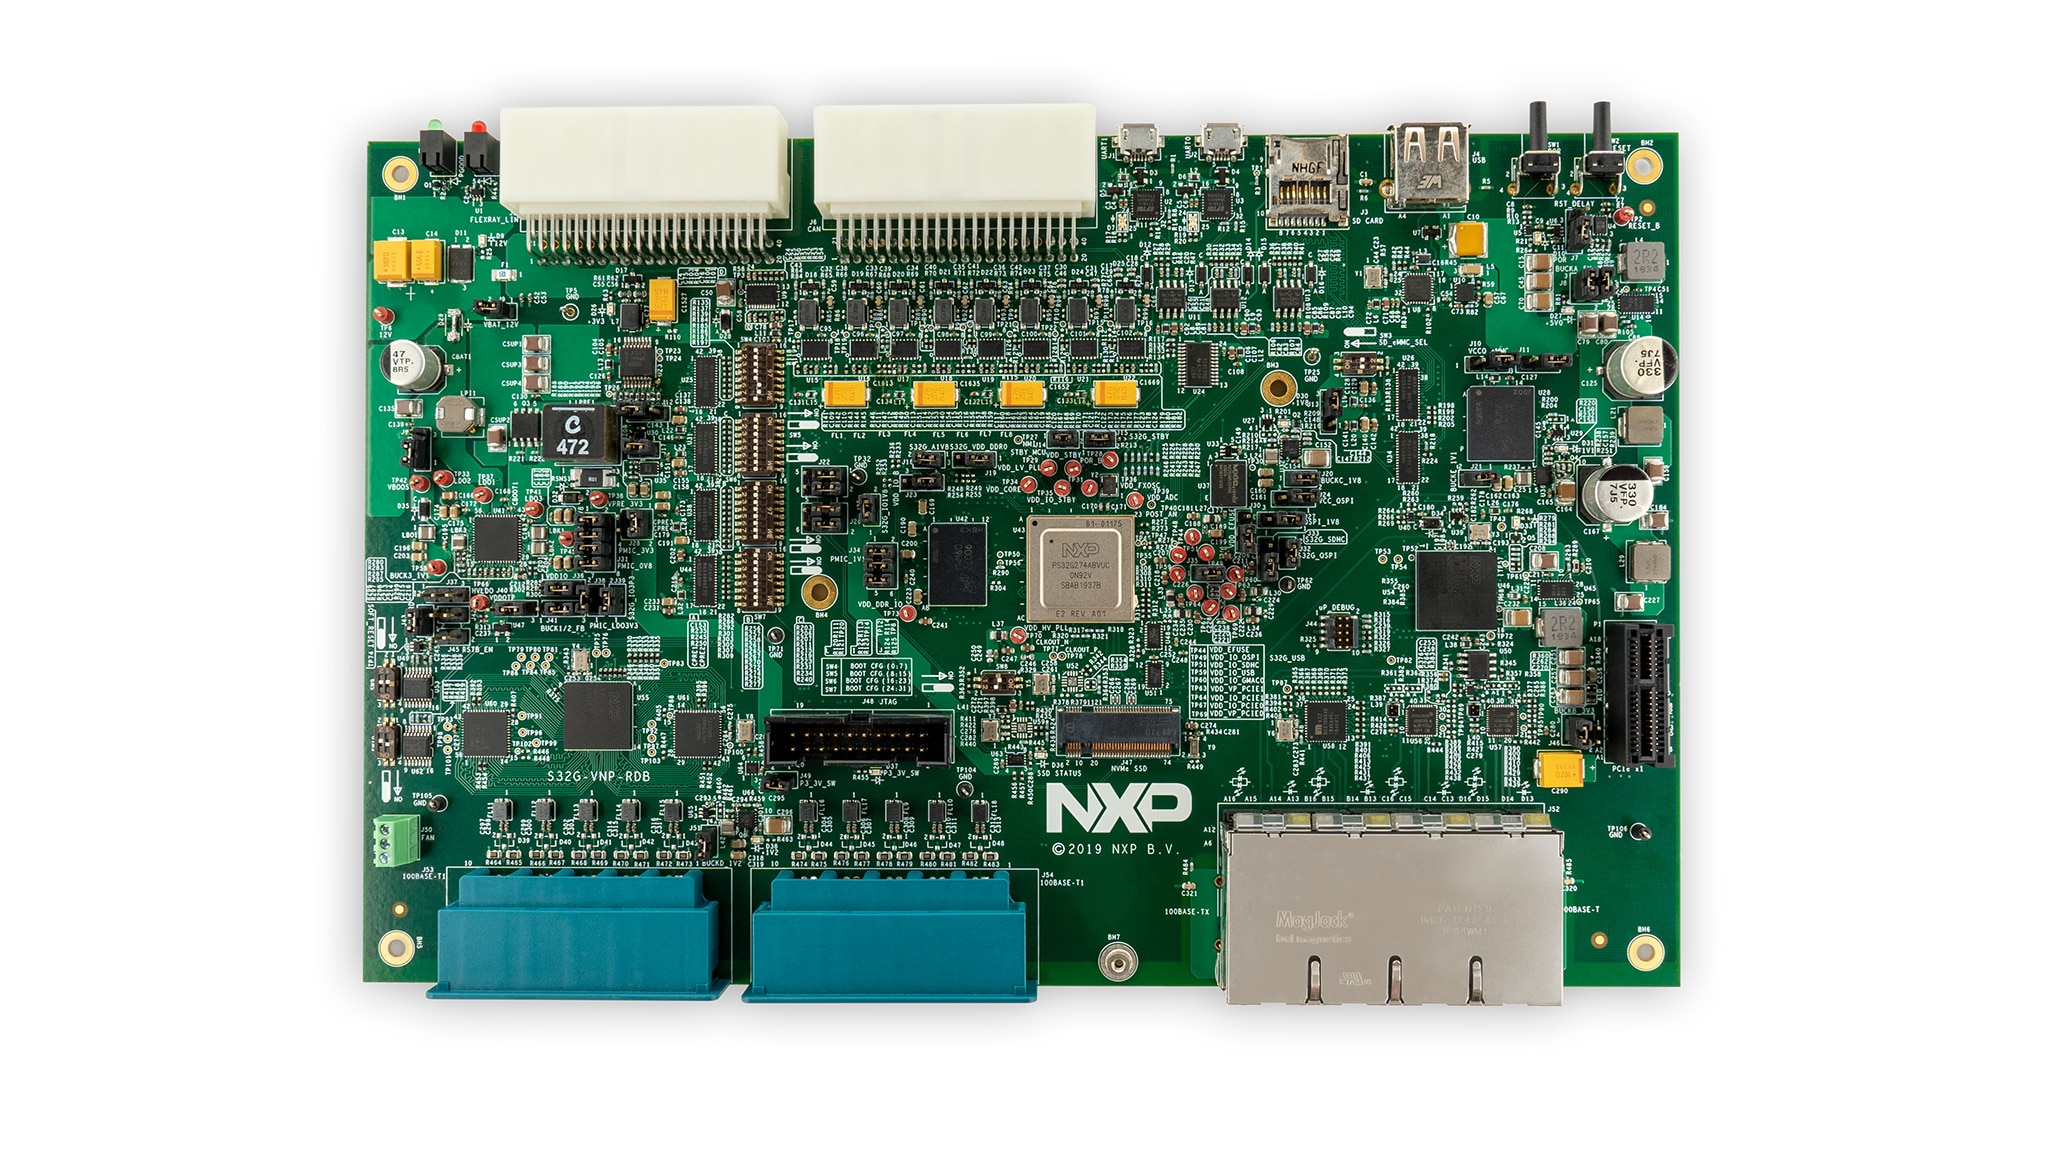 S32G-VNP-RDB reference design board – no enclosure